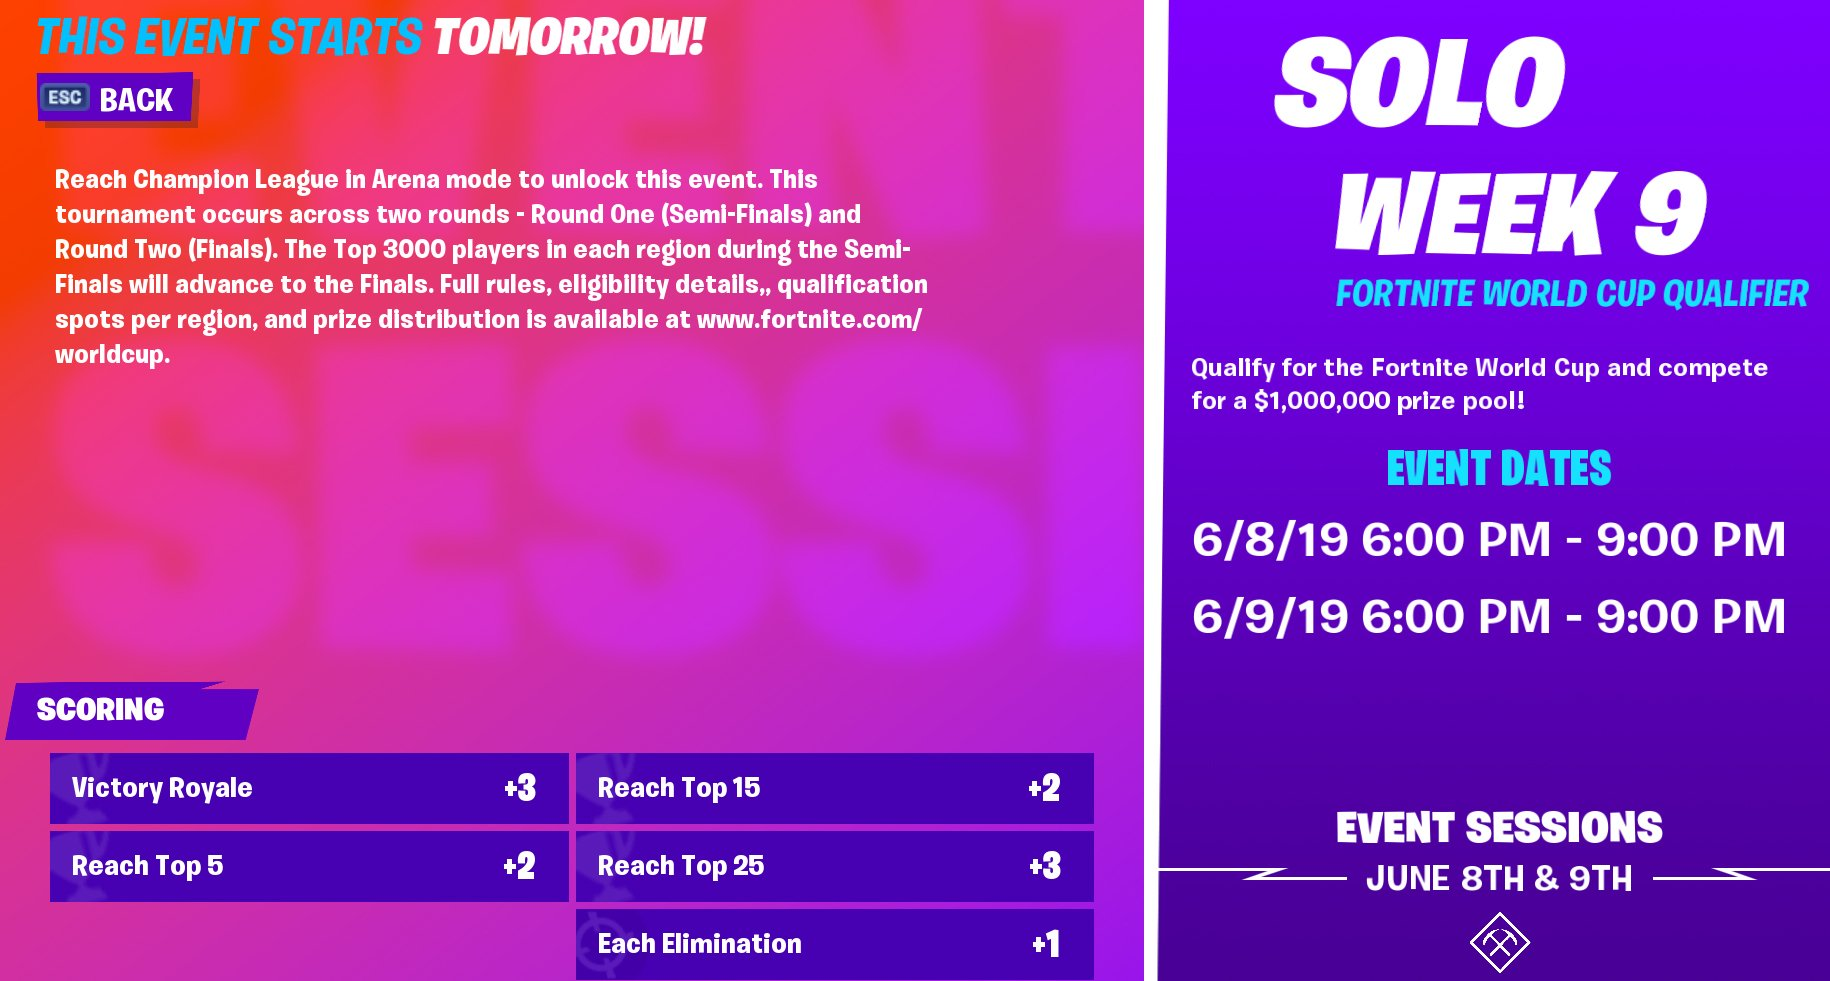 How To Watch The Fortnite World Cup Week 1 Qualifiers